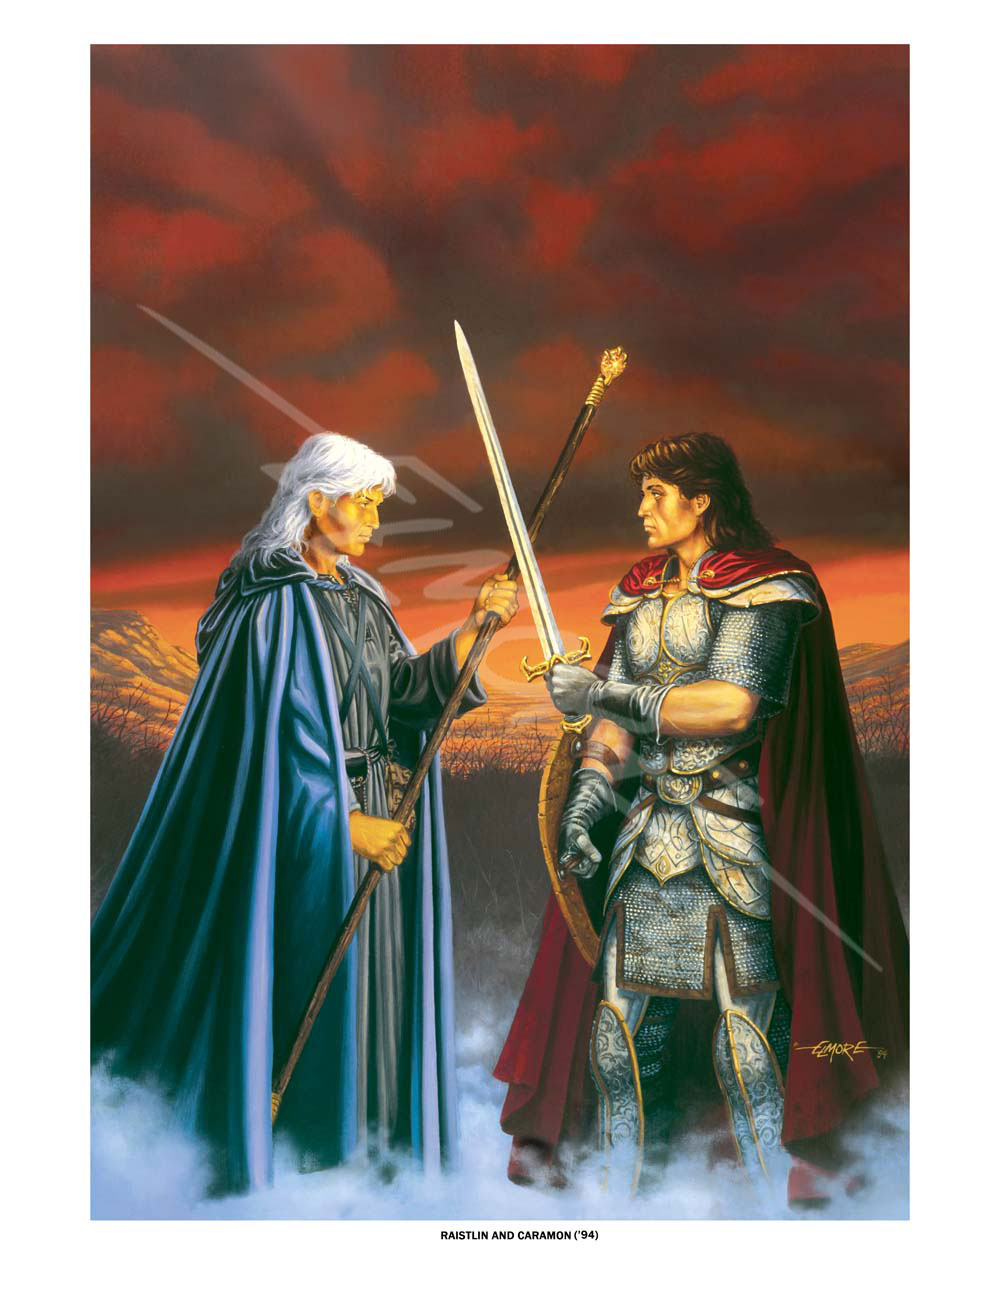 Dragonlance - Raistlin And Caramon 94